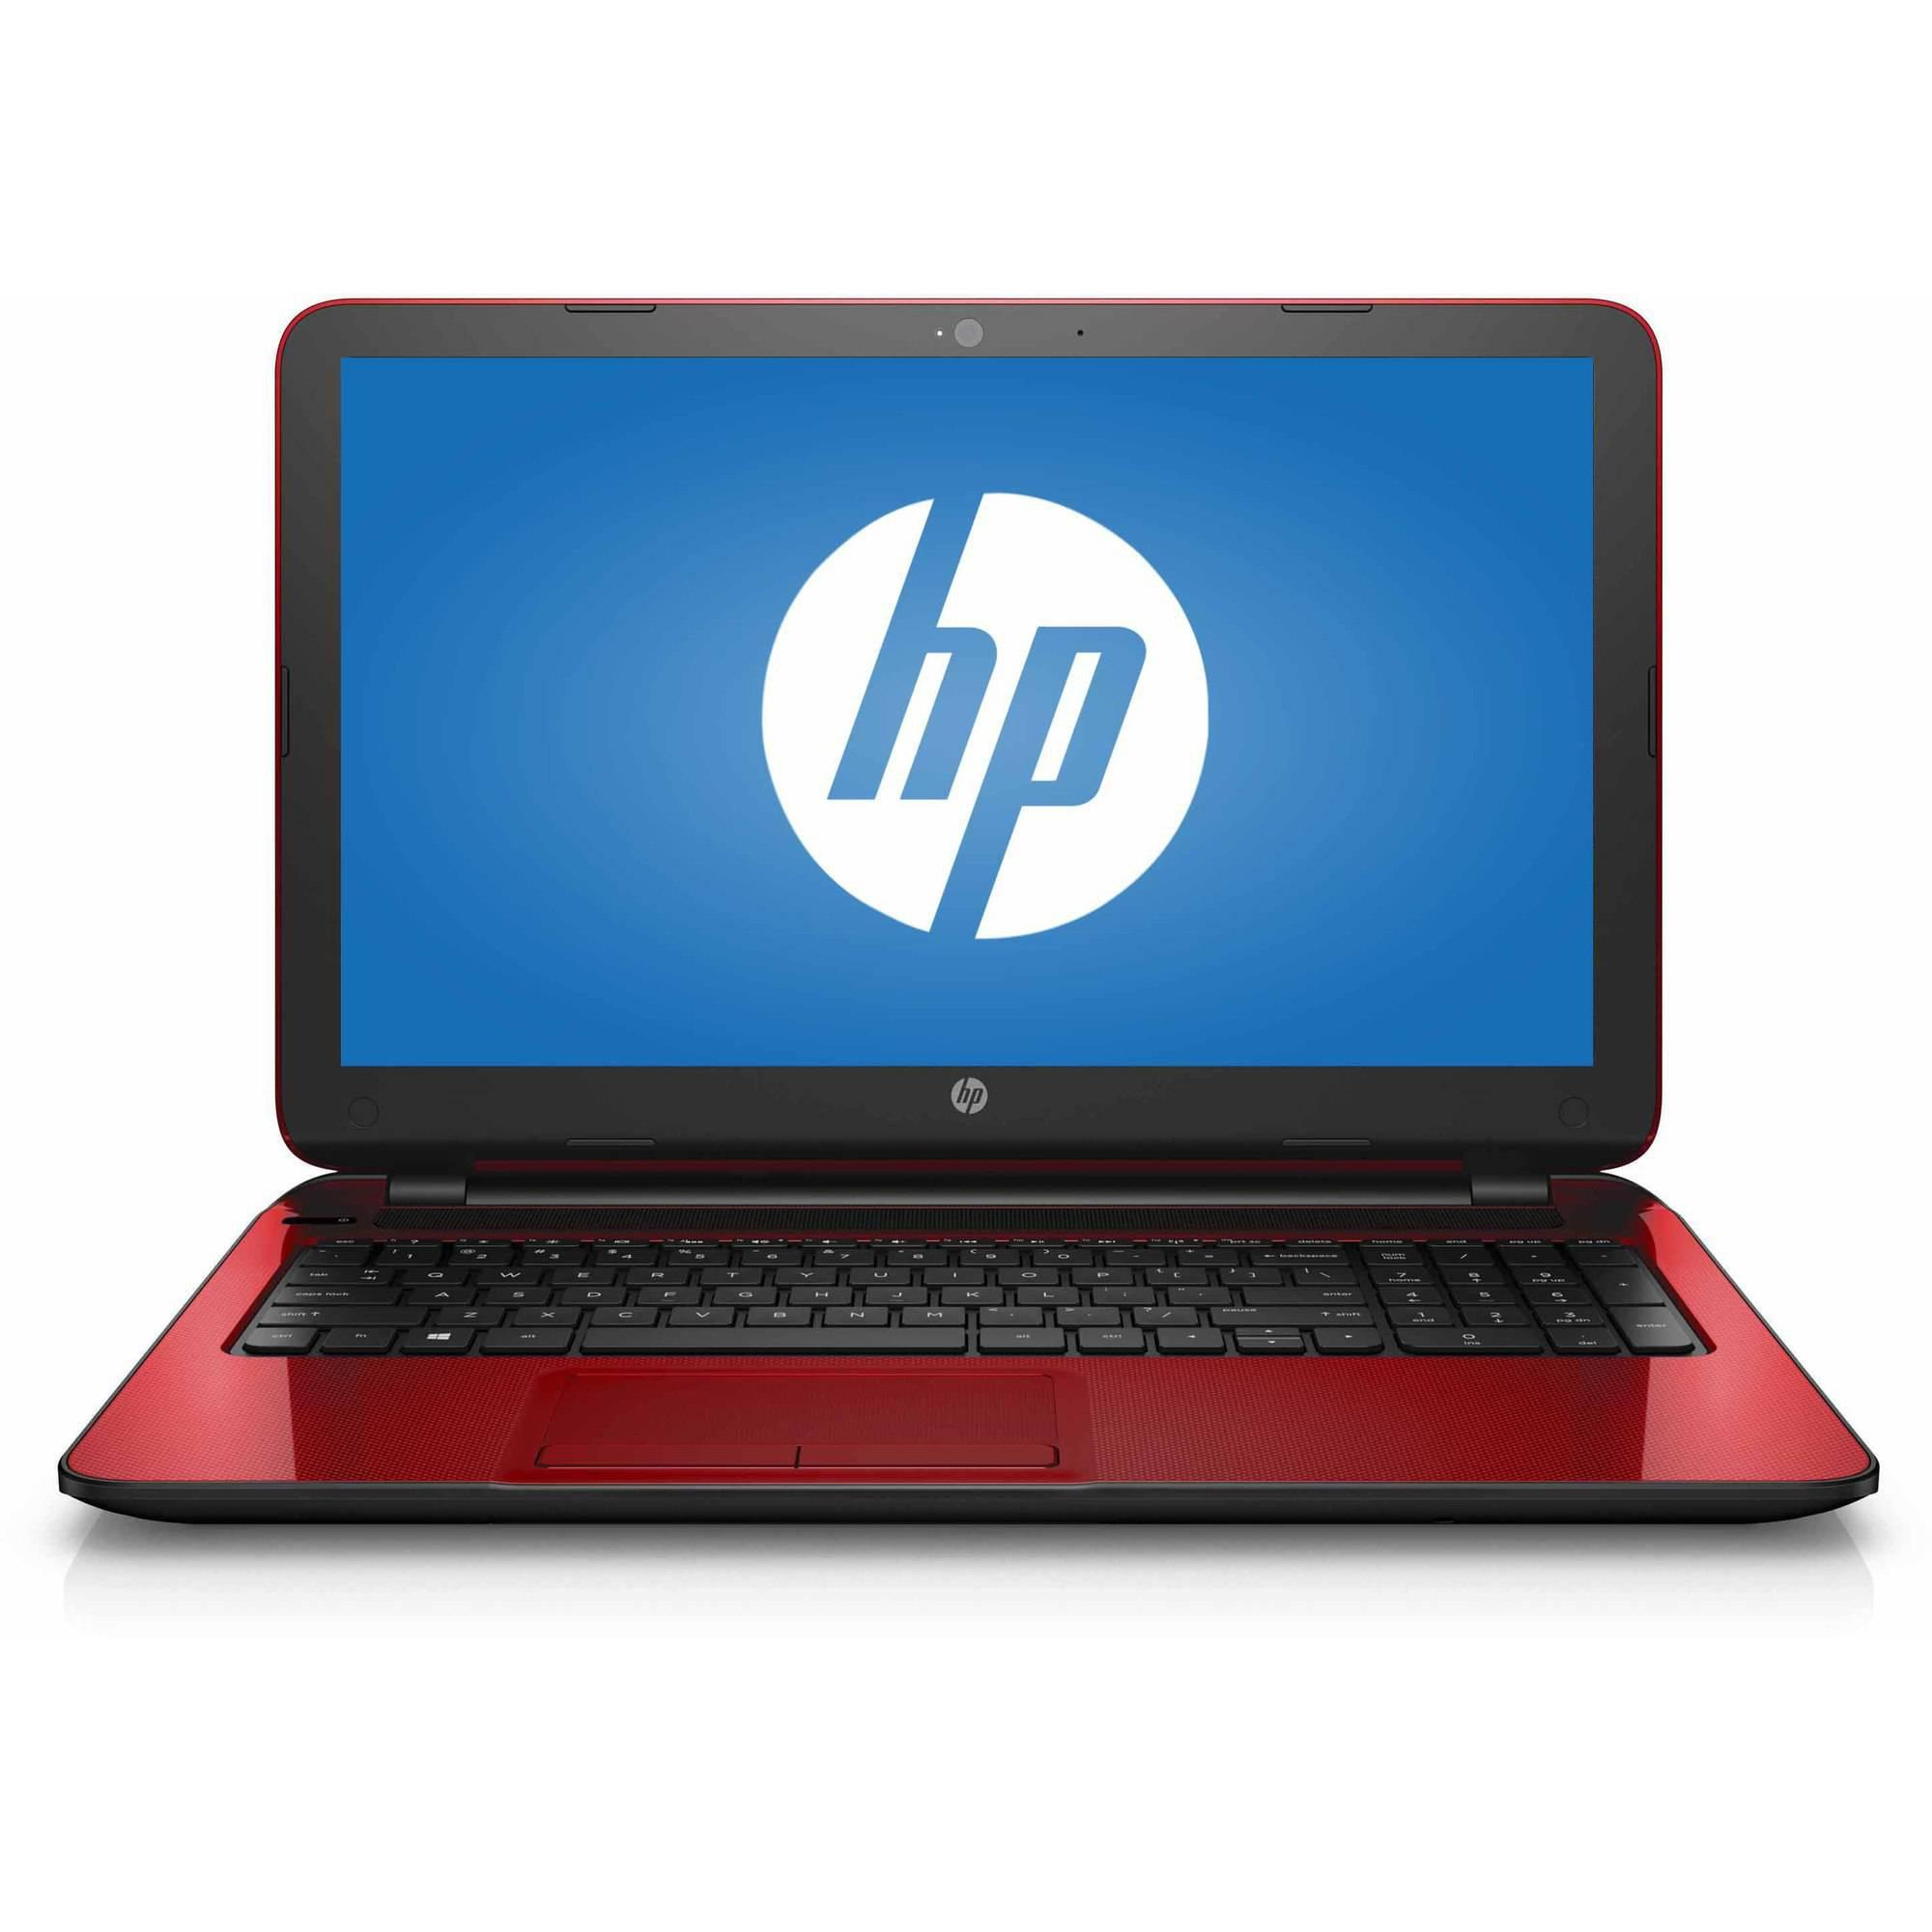 "New Flagship Premium High Performance HP Laptop PC 15.6"" HD BrightView WLED-Backlit Display Intel Pentium N3540 Quad-Core Processor 4GB RAM 500GB Hard Drive HDMI DVD-RW WIFI Windows 10-Red"